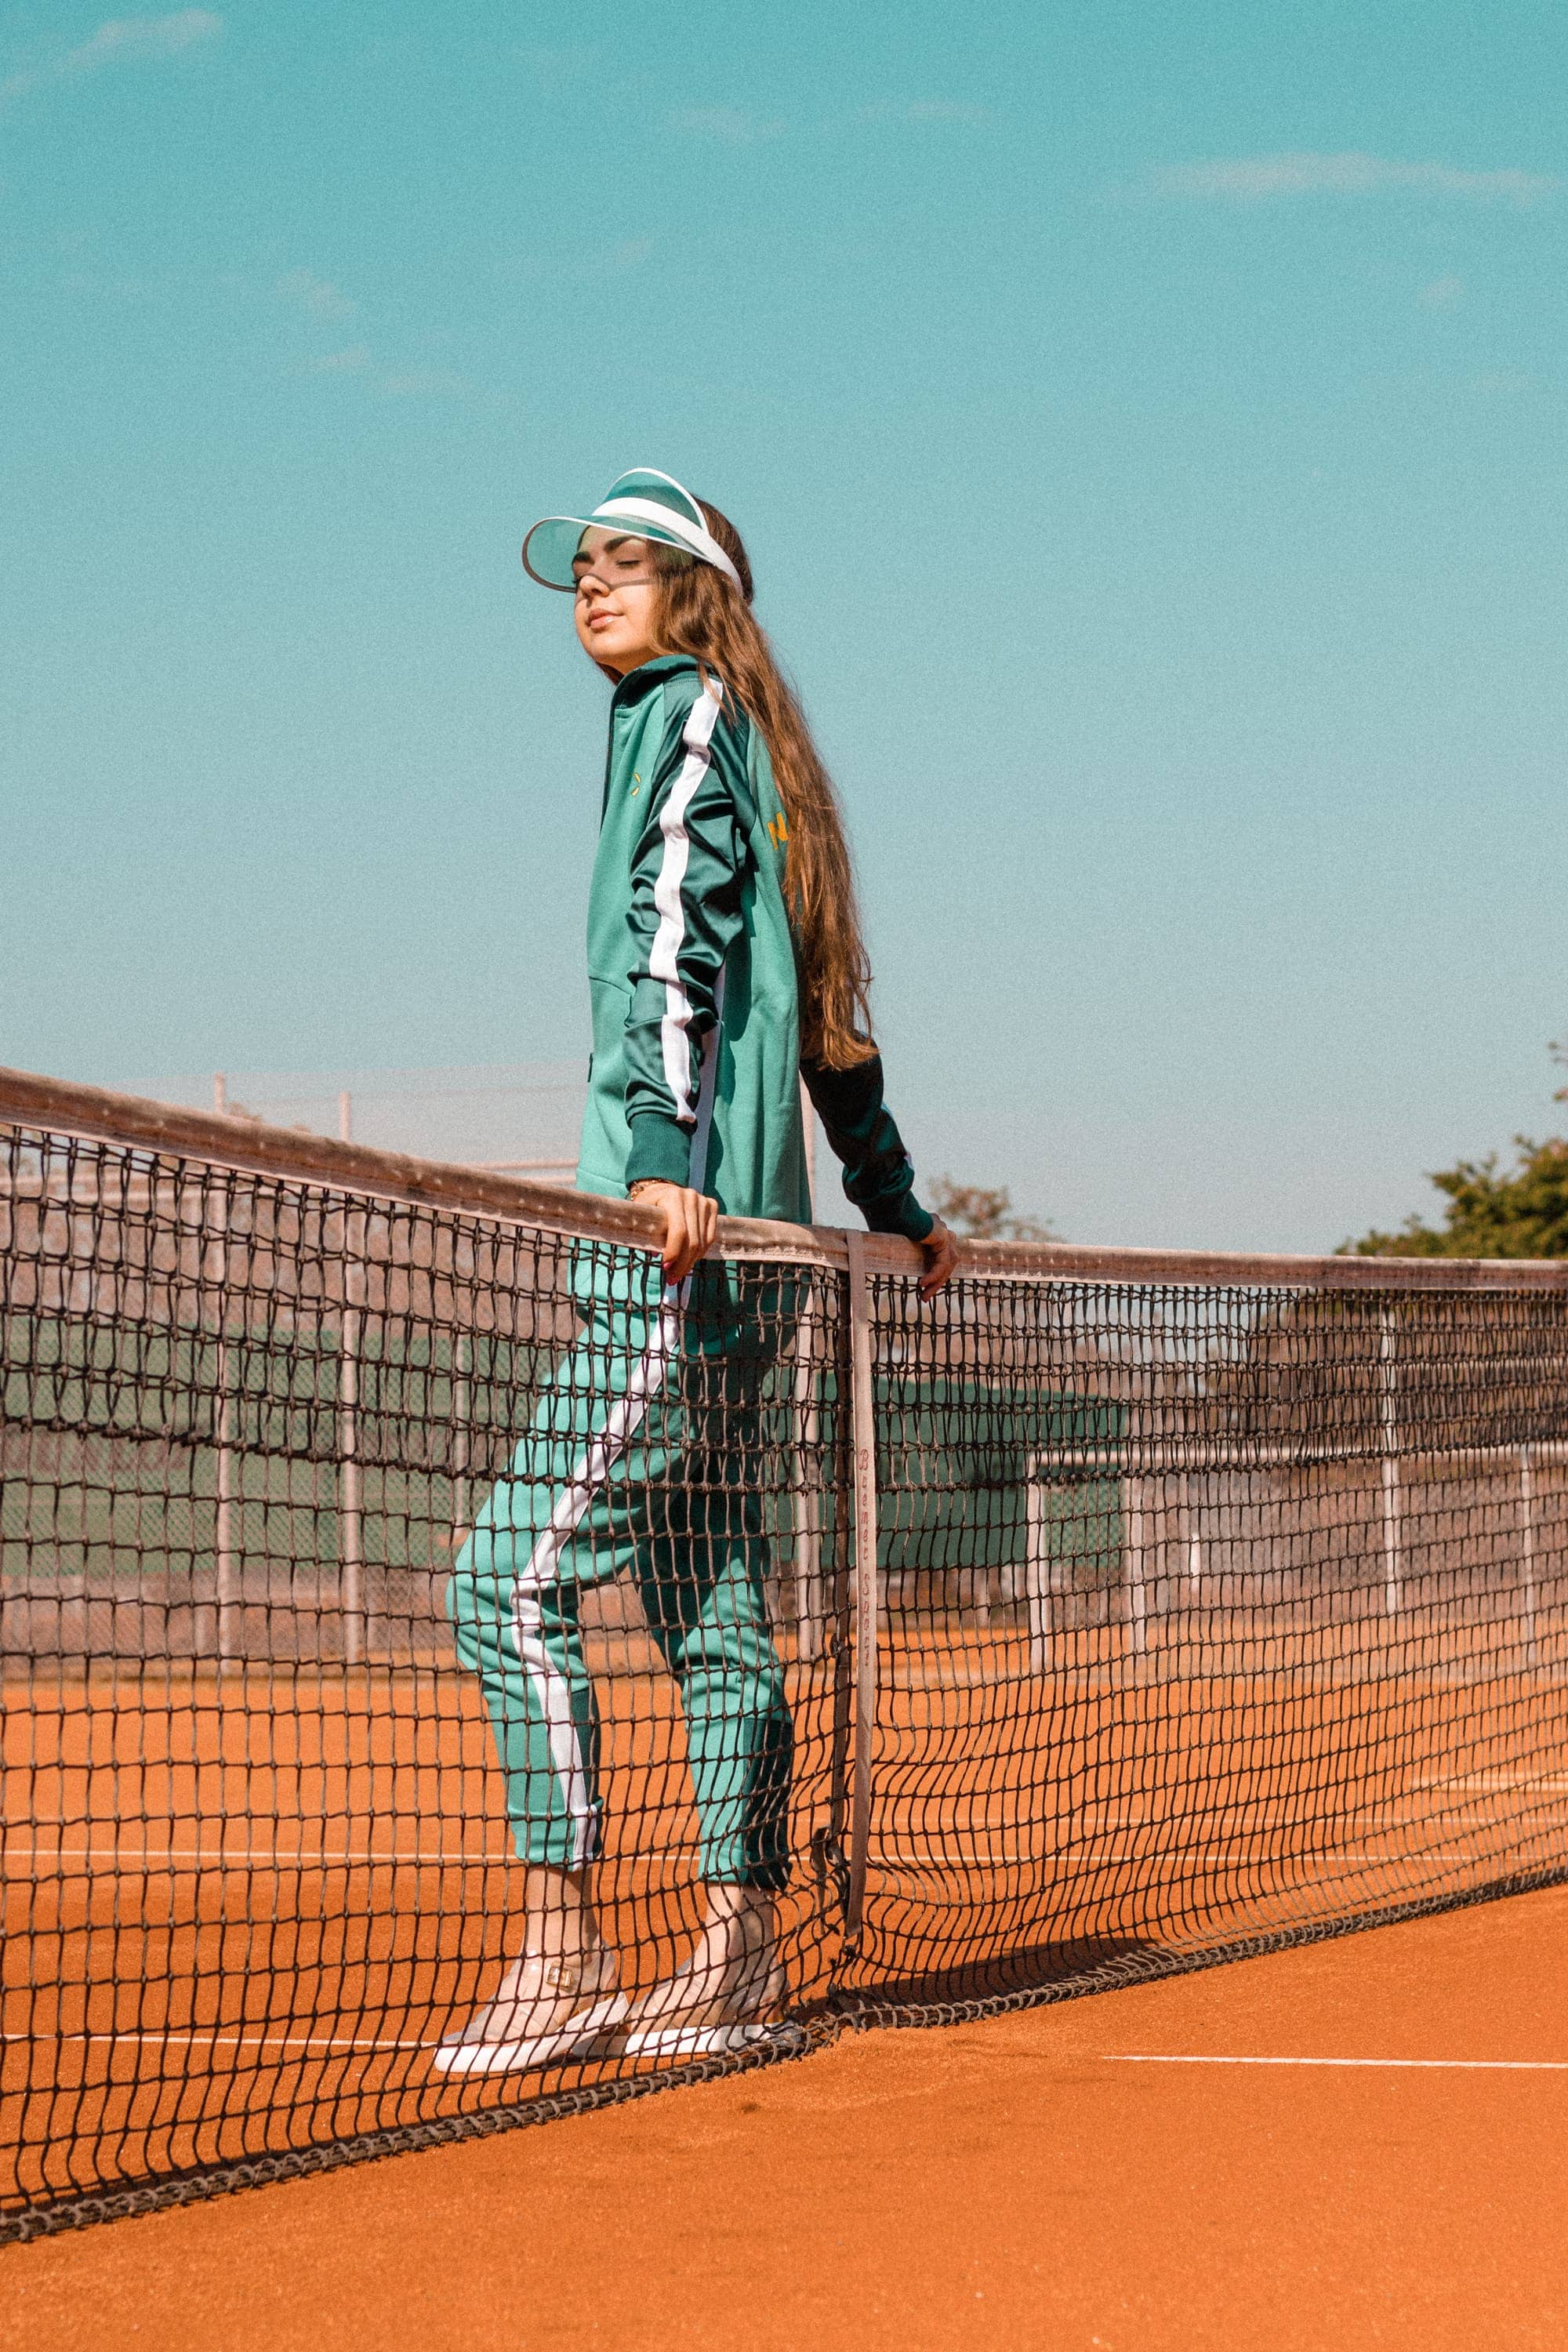 Fashion, Fashionblog, Fashion Magazine, Editorial, Style, Style Guide, Style Inspiration, Streetwear, Street Style, Swiss, Switzerland, Outift, OOTD, Outfit Inspiration, Inspo, Girly, Onepiece, Onesie, Overall, Tennis, Tennis Court, Sports, Athleisure, Mint, Green, Tracksuit, Power Dressing